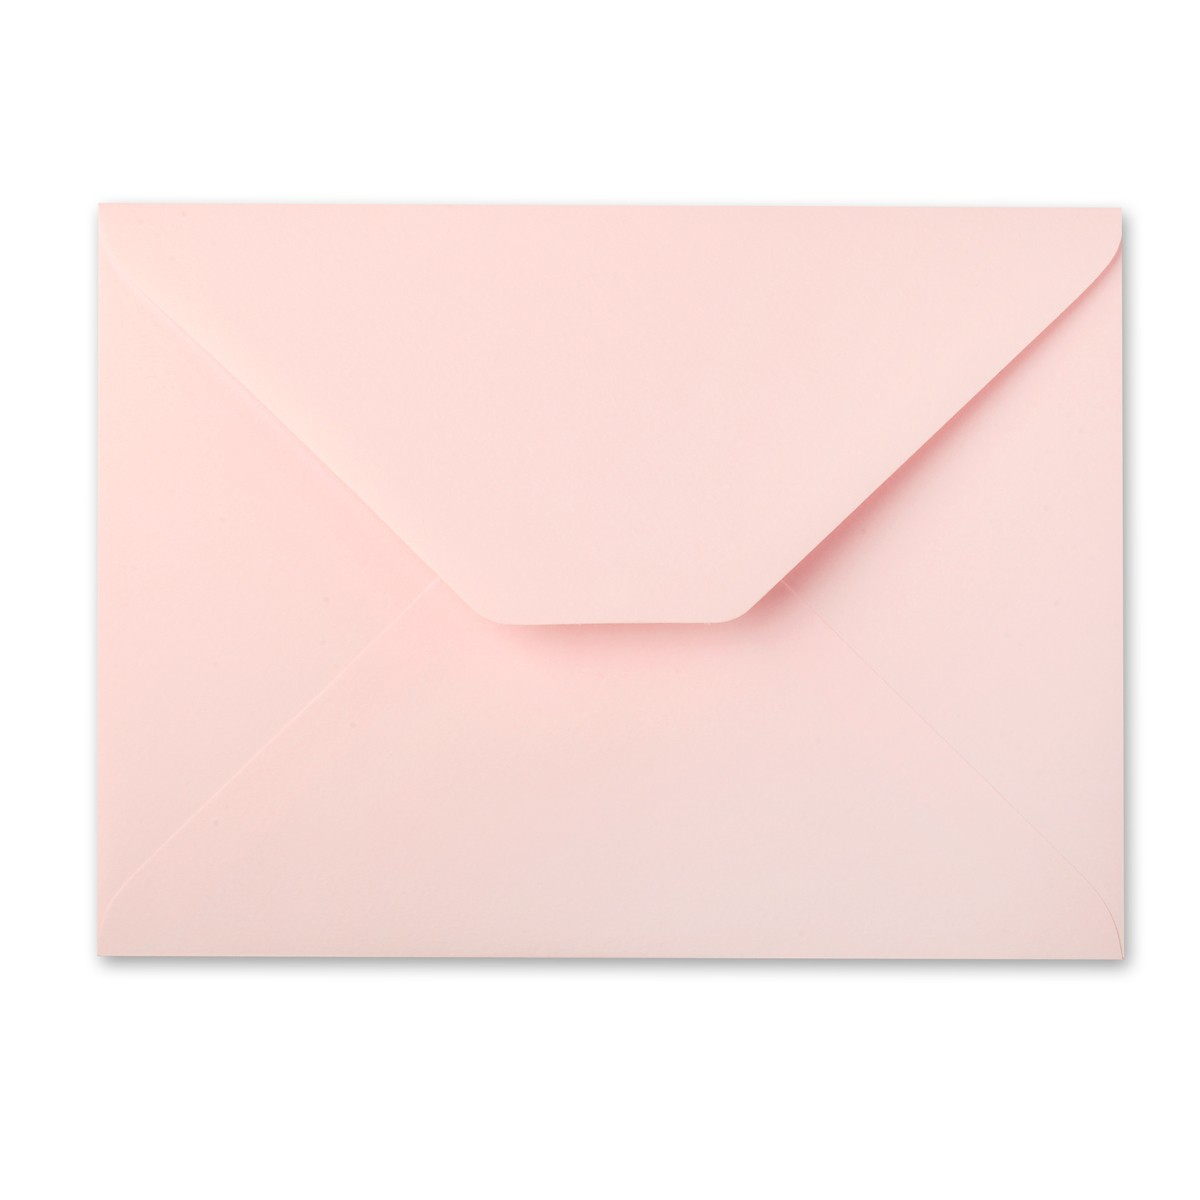 Arturo Pale Pink Grande Invitation Envelopes 700e 80 Text 6 13